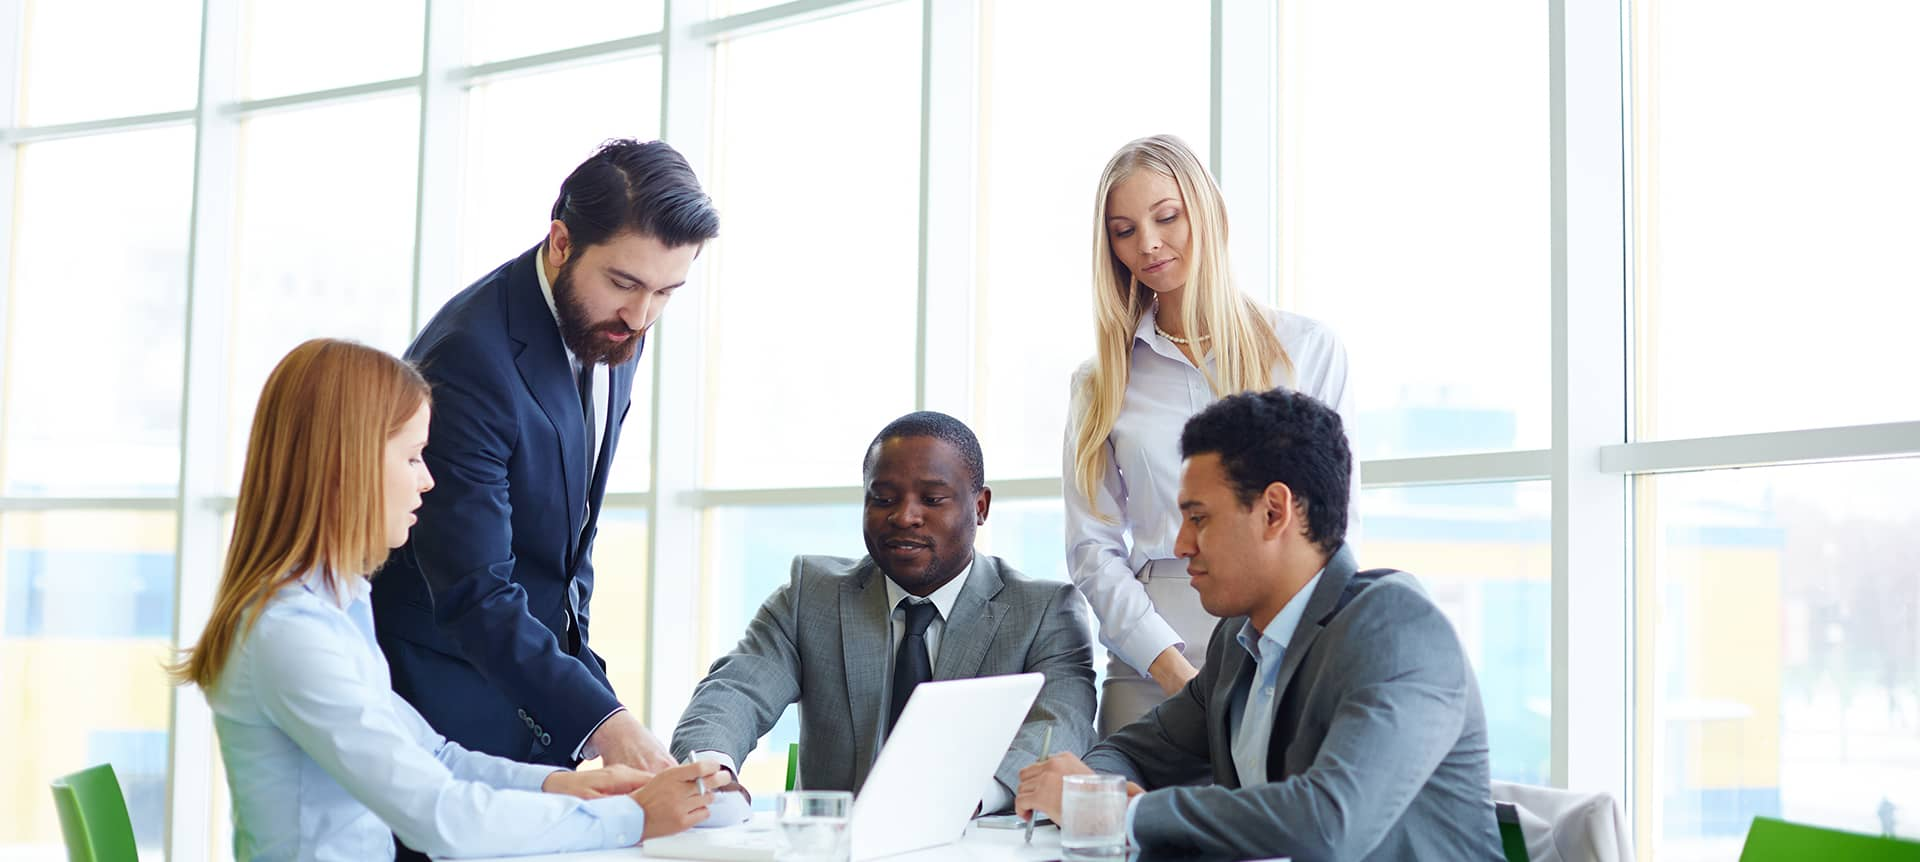 A group of recruiters working together to achieve hiring success